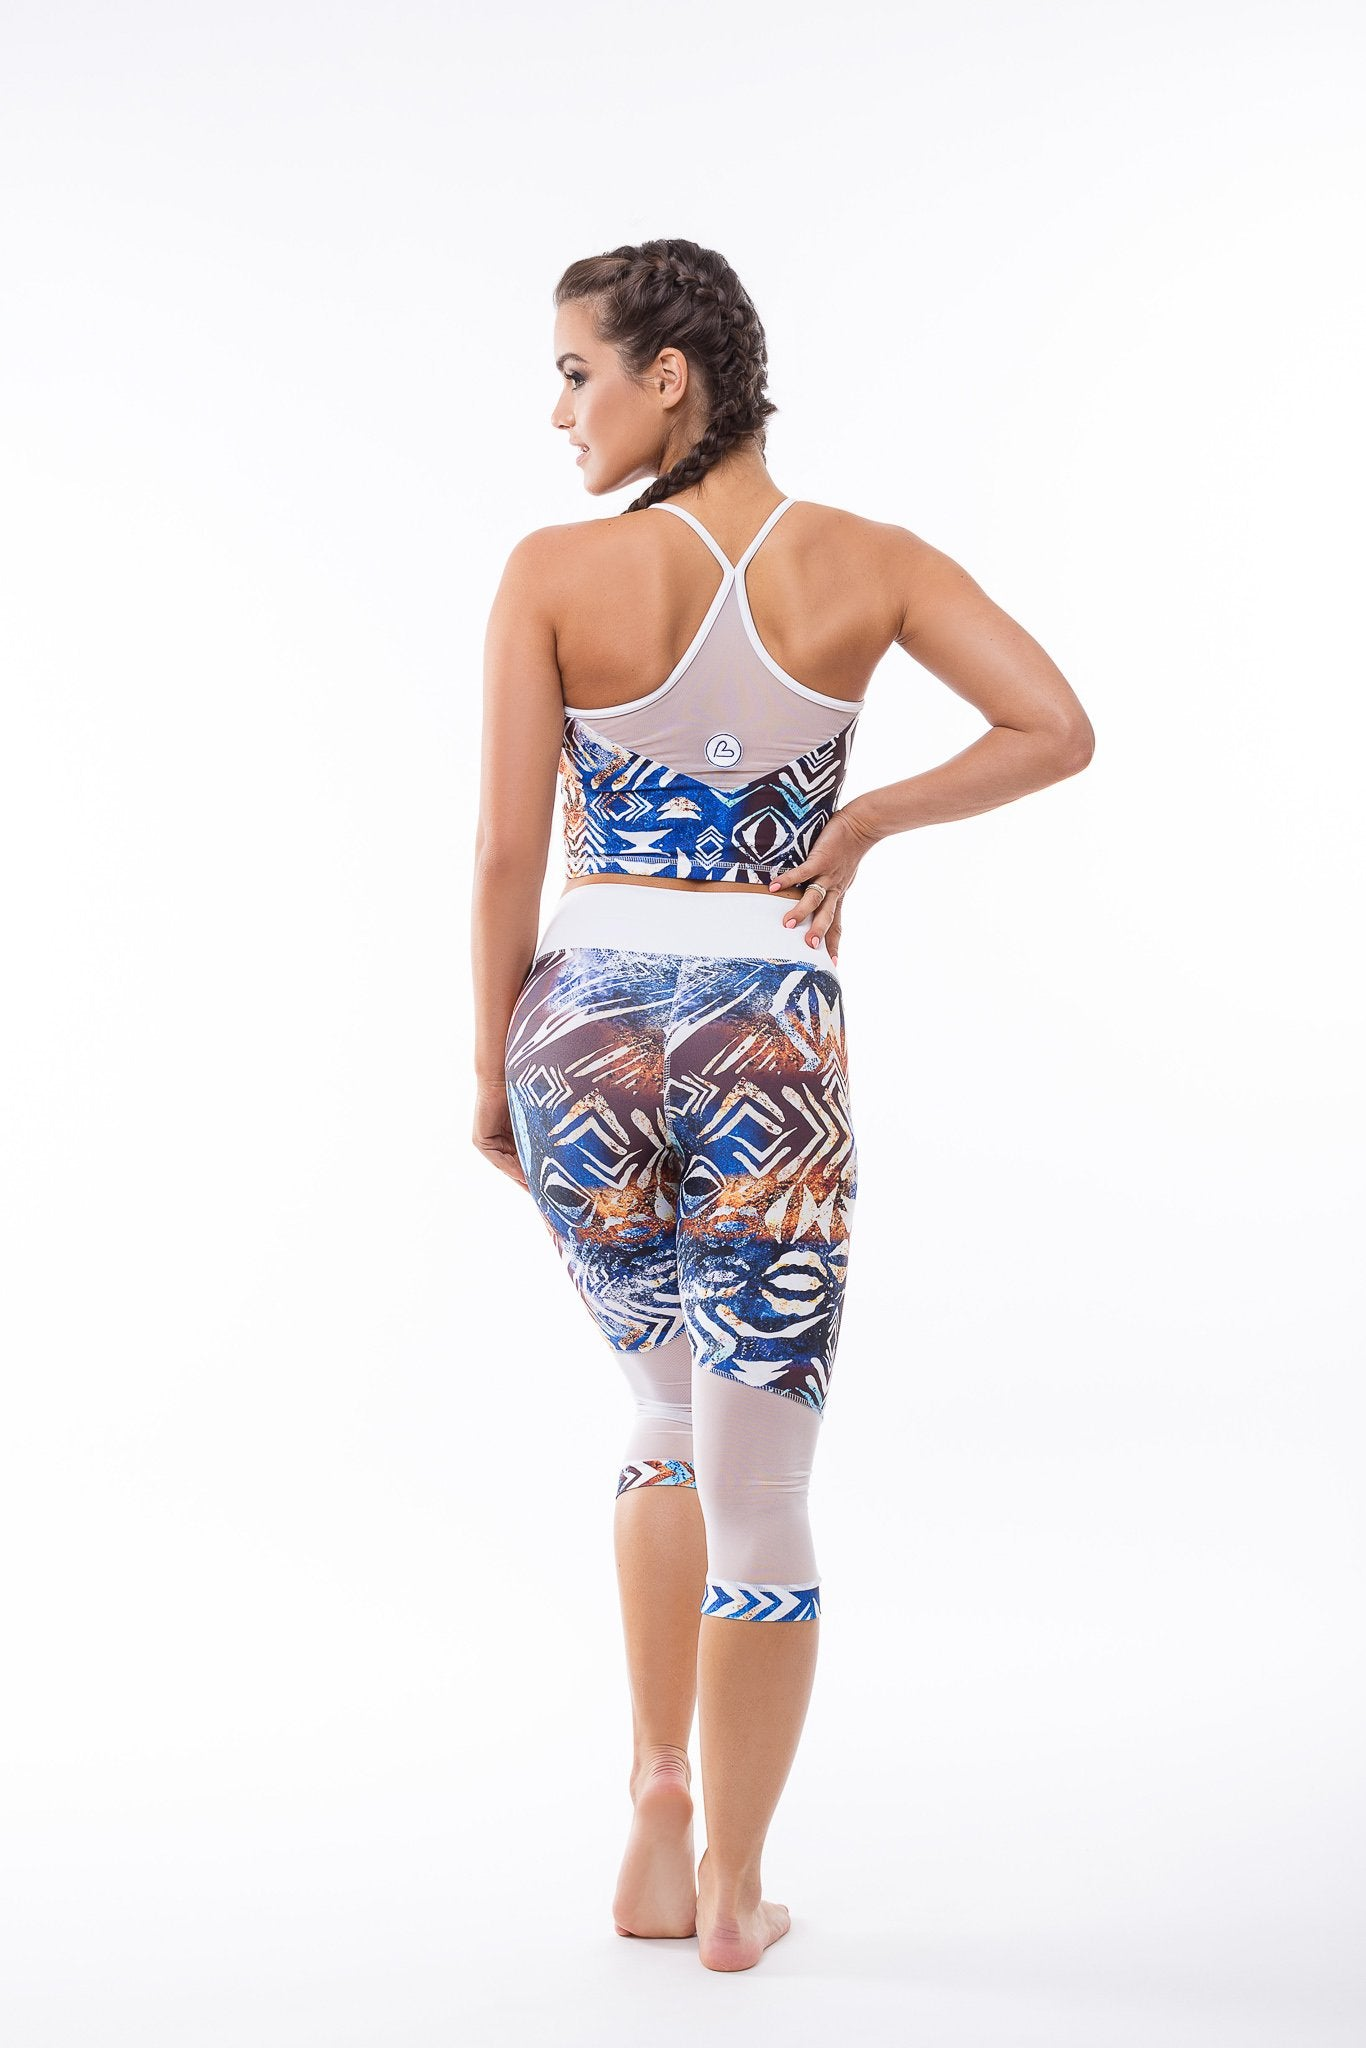 Africa Cropped Workout Leggings - BarbellPrincessUsa